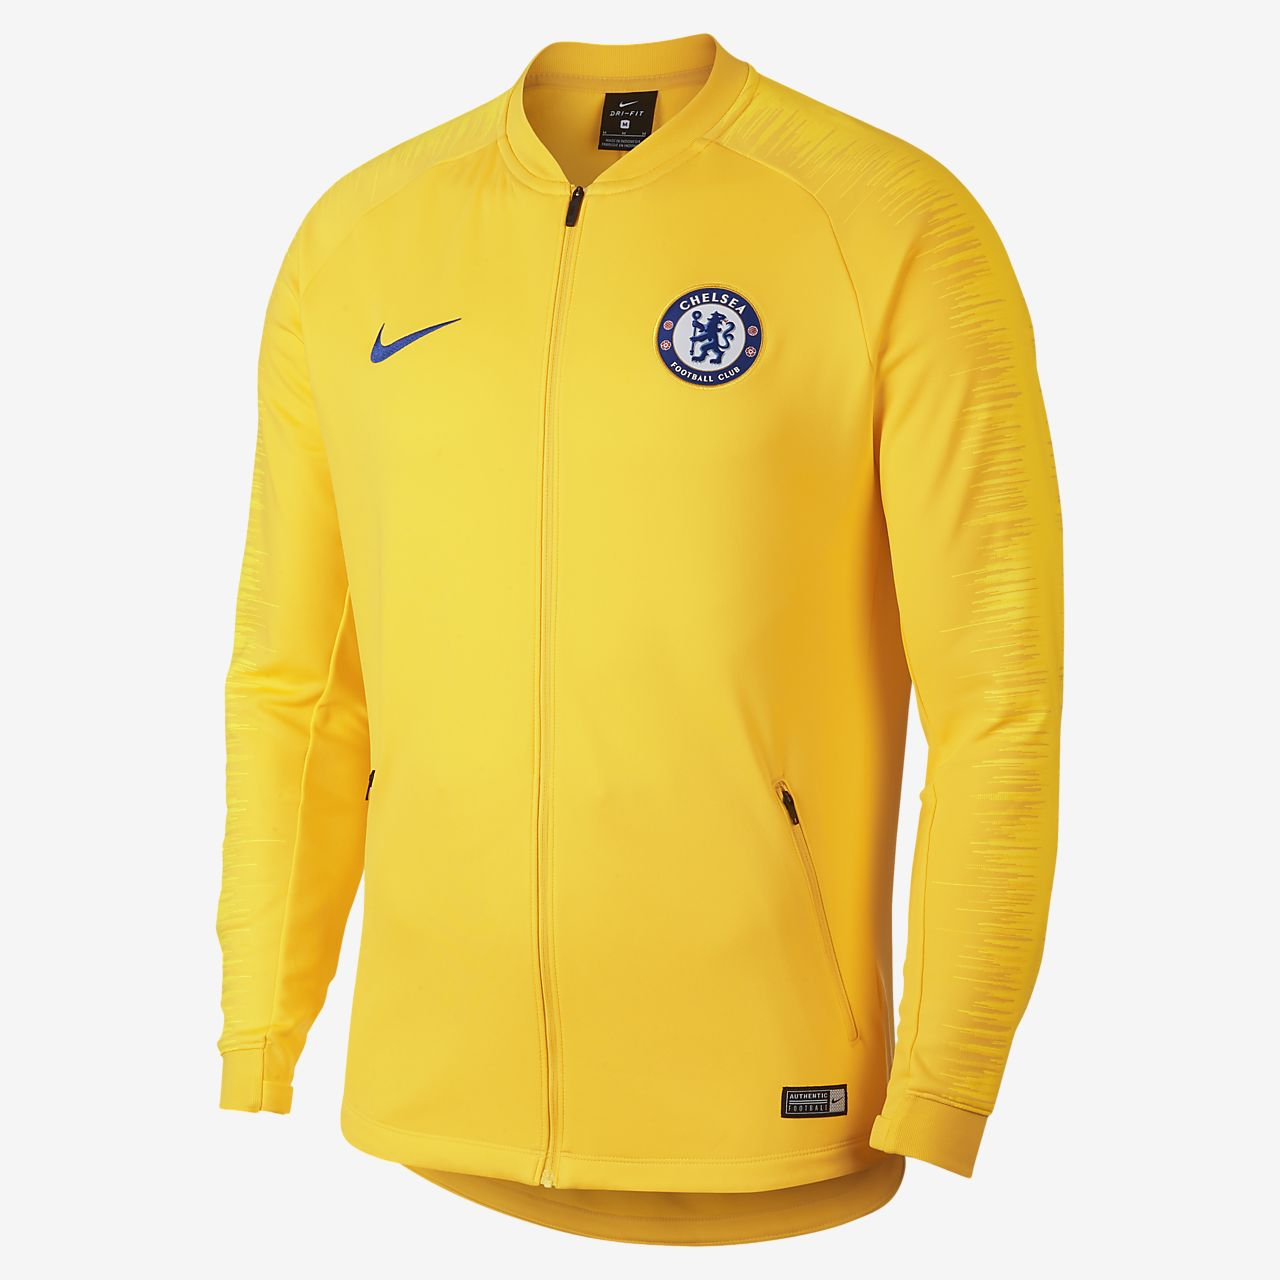 ff7b2130ceaf Chelsea FC Anthem Men s Football Jacket. Nike.com LU